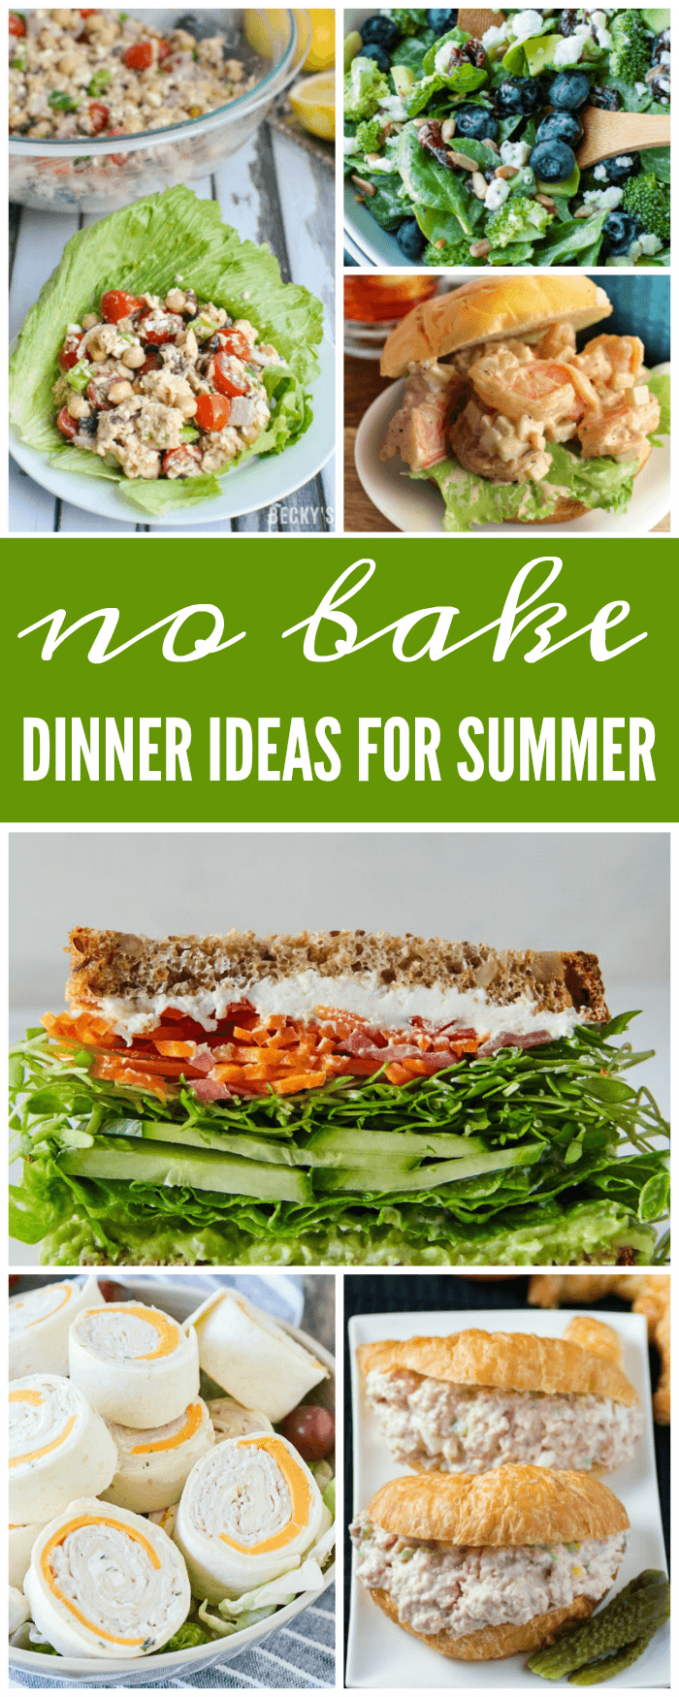 No Bake Dinner Ideas for Summer & No Cook Dinner Recipes (With ..